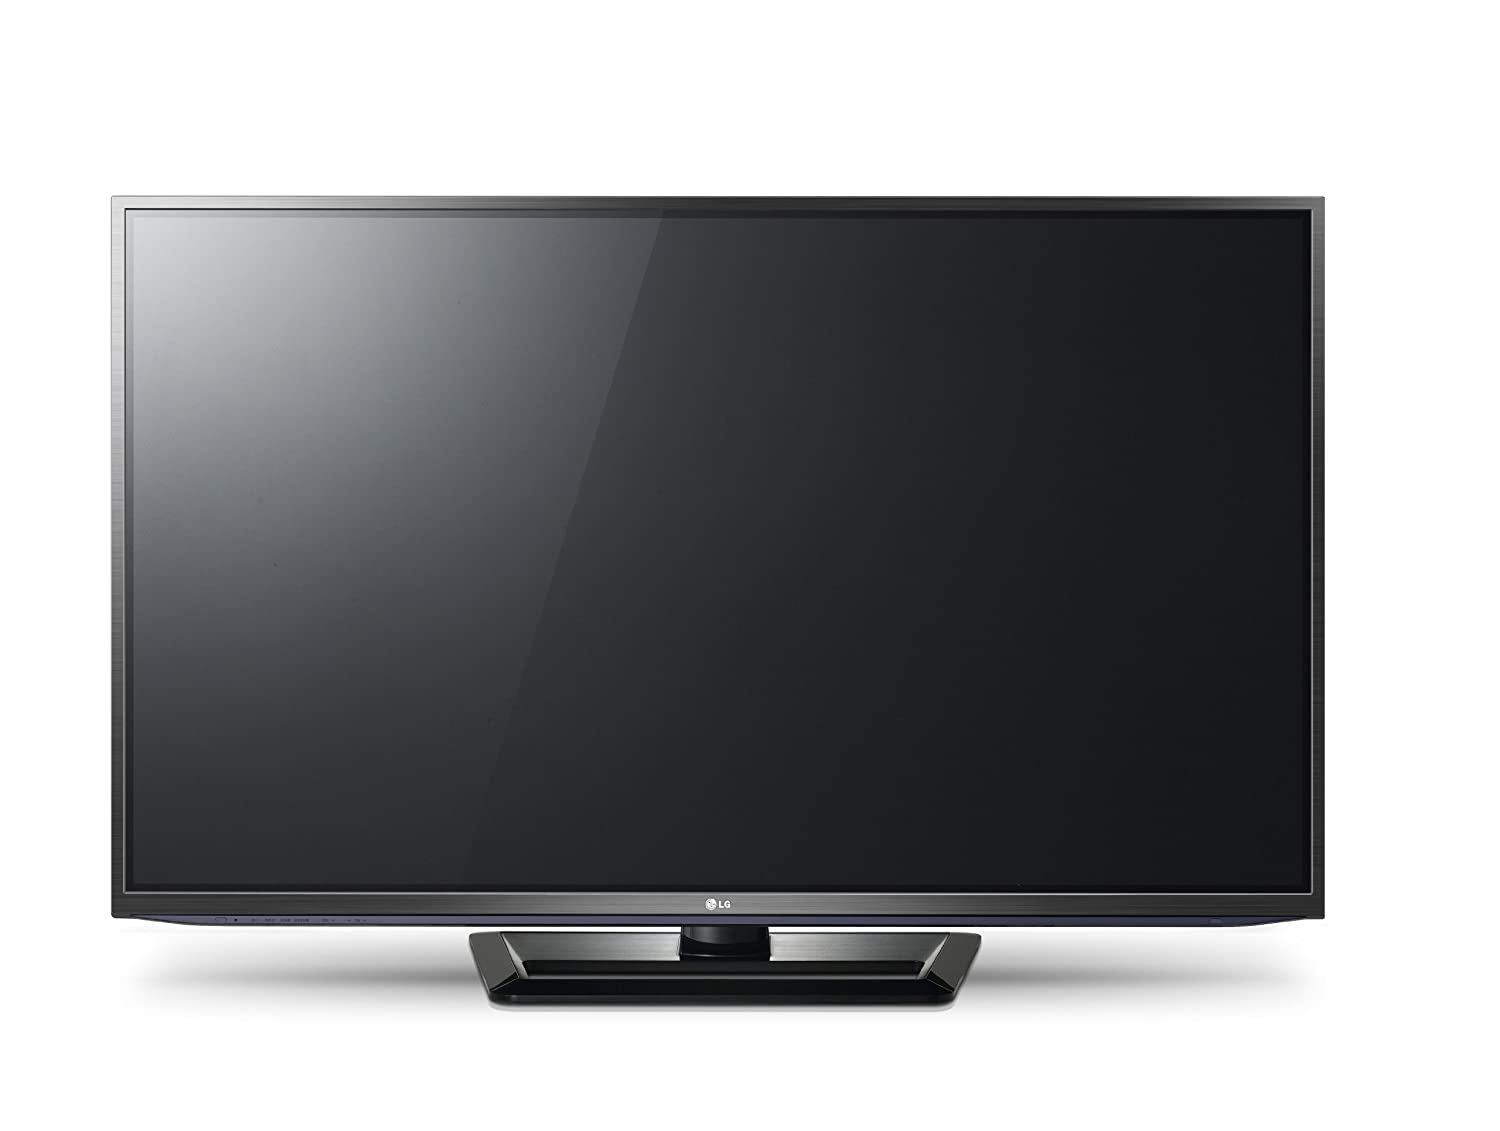 LG 50PM6700 50-Inch 1080p 600Hz Active 3D Plasma HDTV $599.00